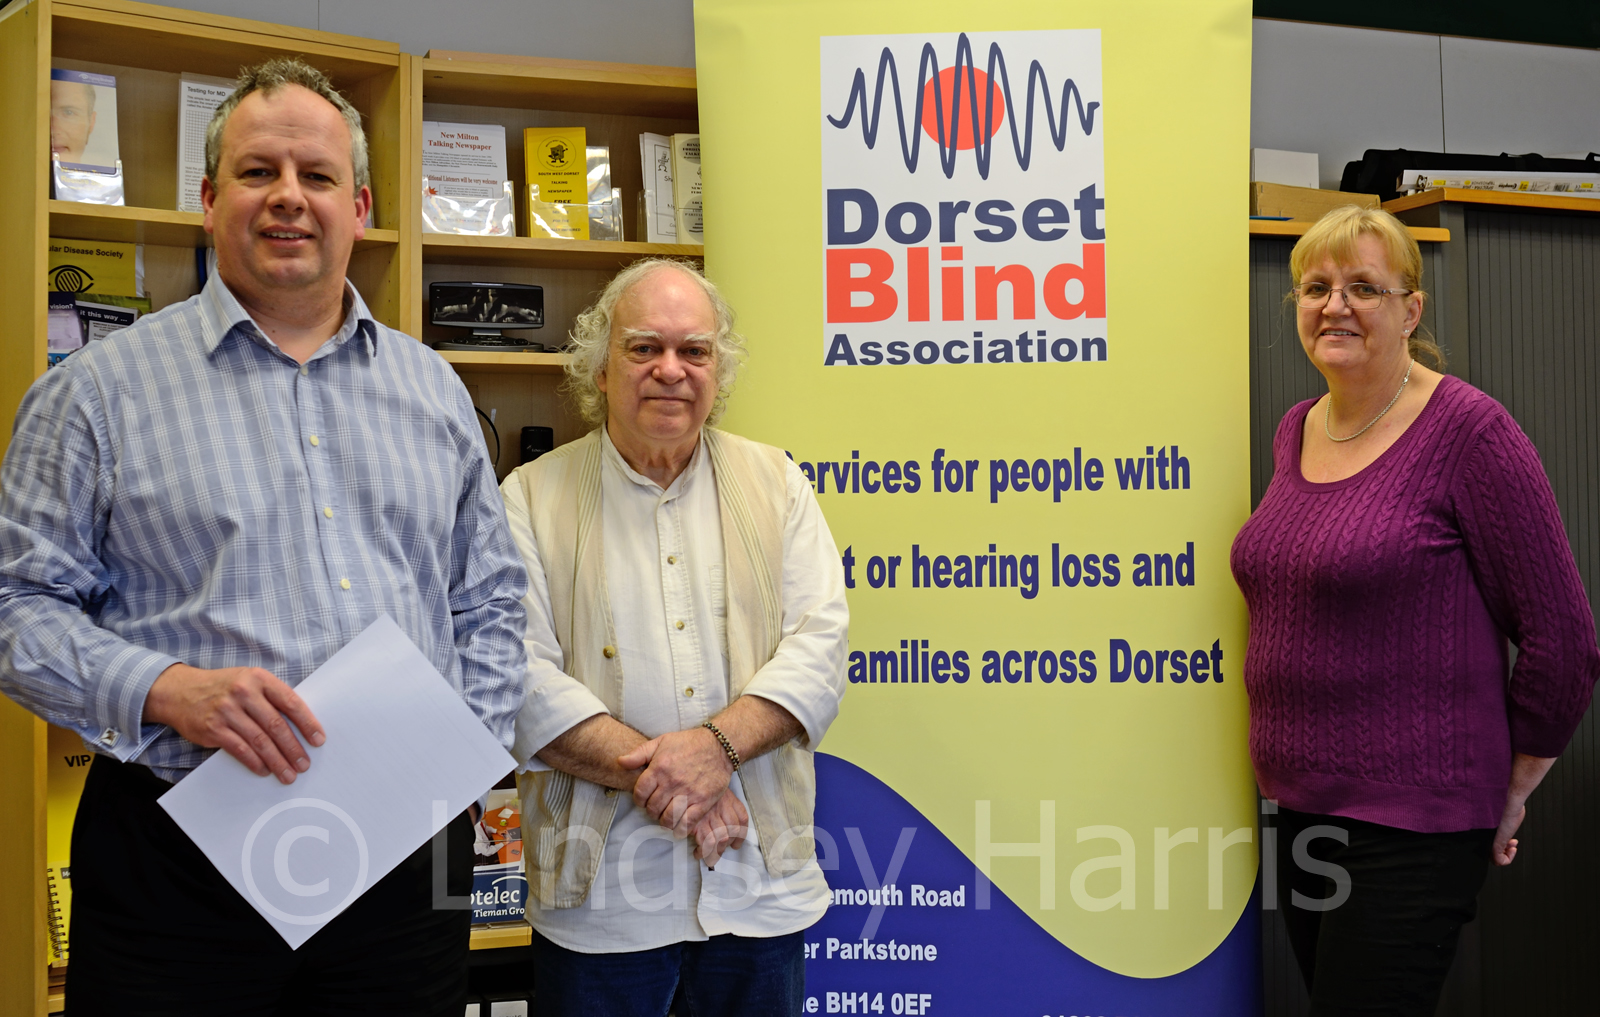 Dorset Blind Association, Lower Parkstone, Poole, Dorset.